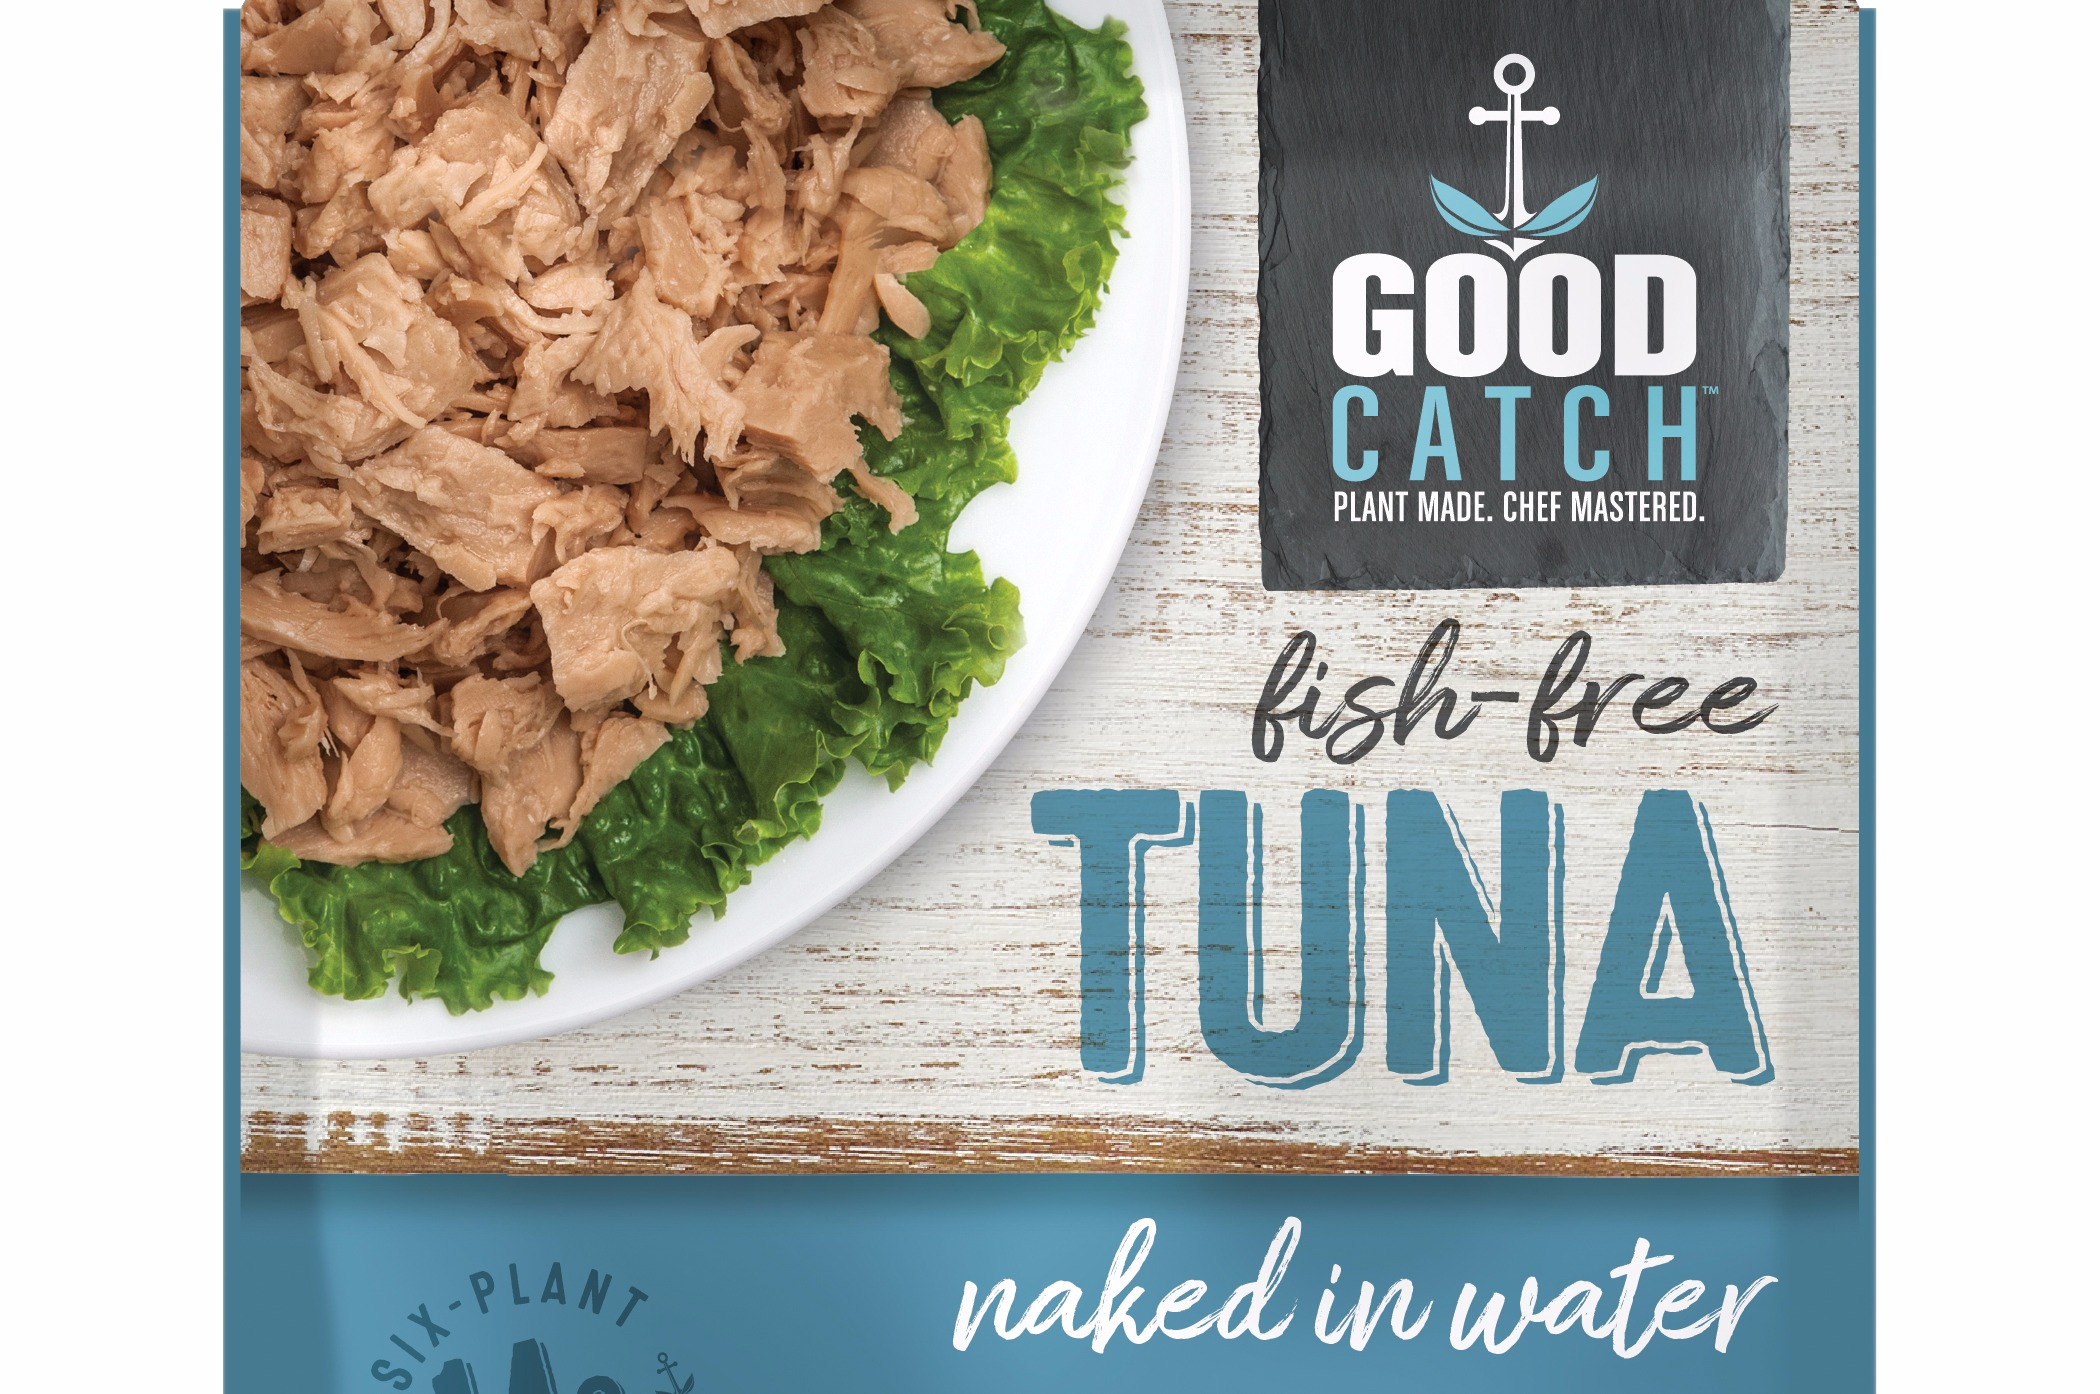 Good Catch Fish-Free Tuna, Naked in Water